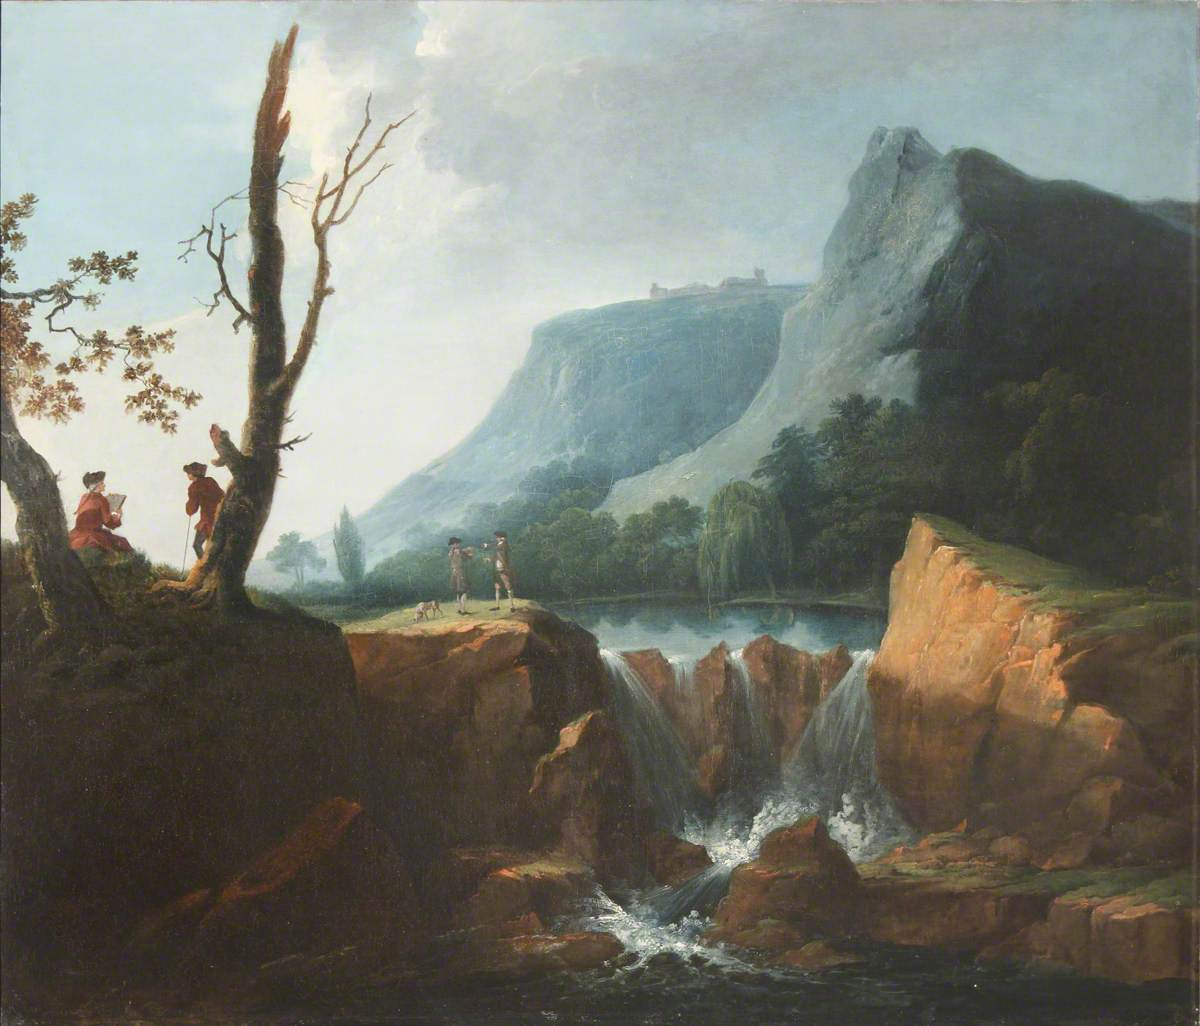 Mountainous River Landscape with Elegant Figures by a Waterfall